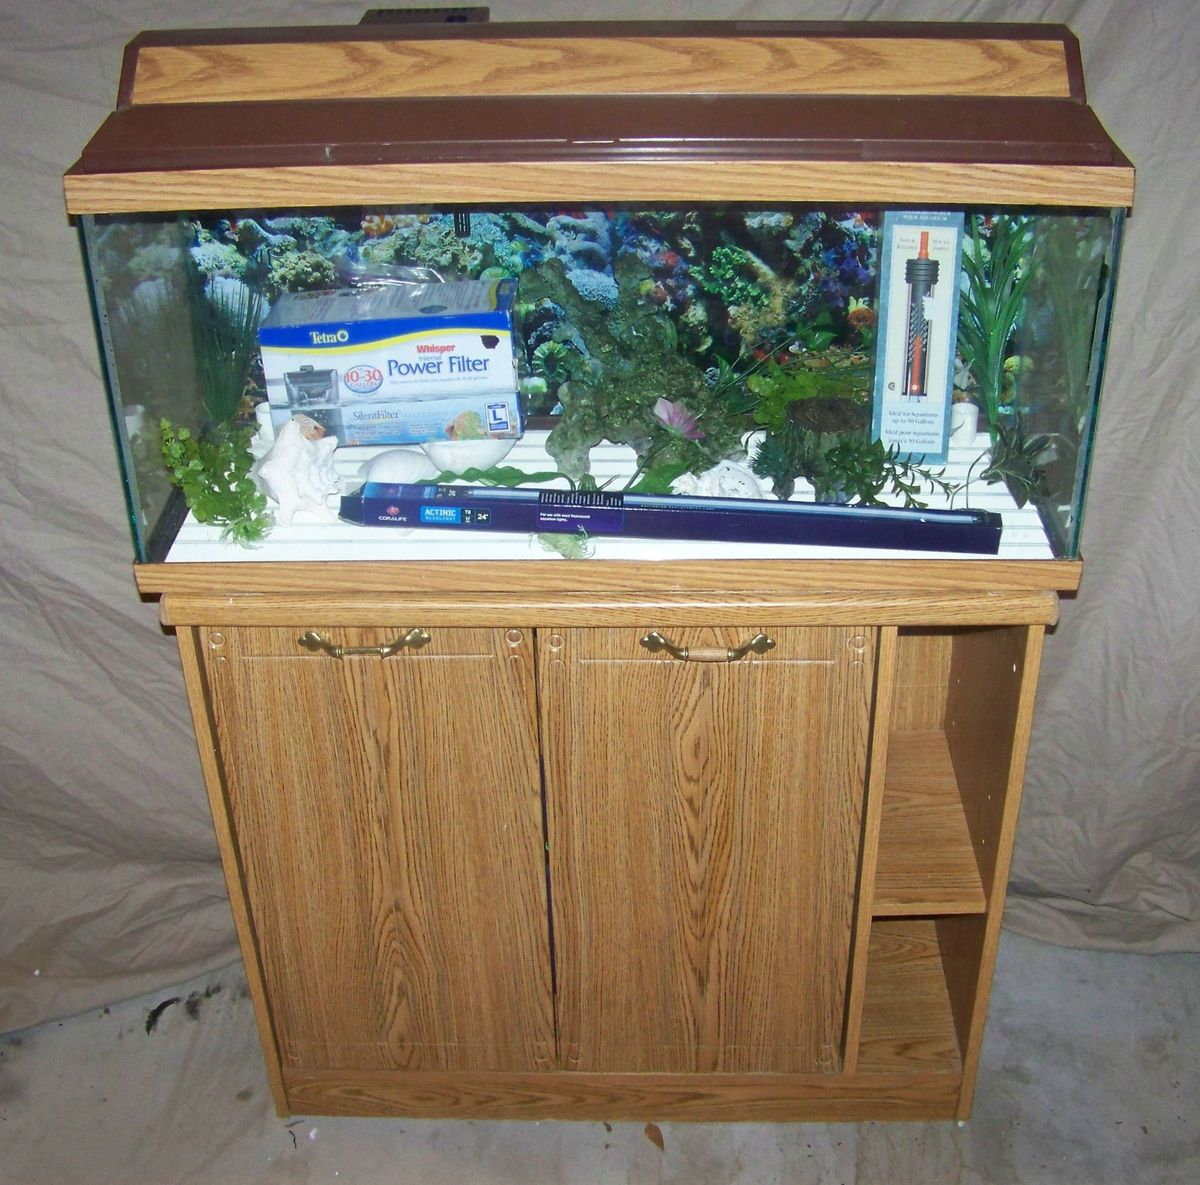 Fish tank decorations 30 gallon 30 gal 2017 fish tank Thirty gallon fish tank